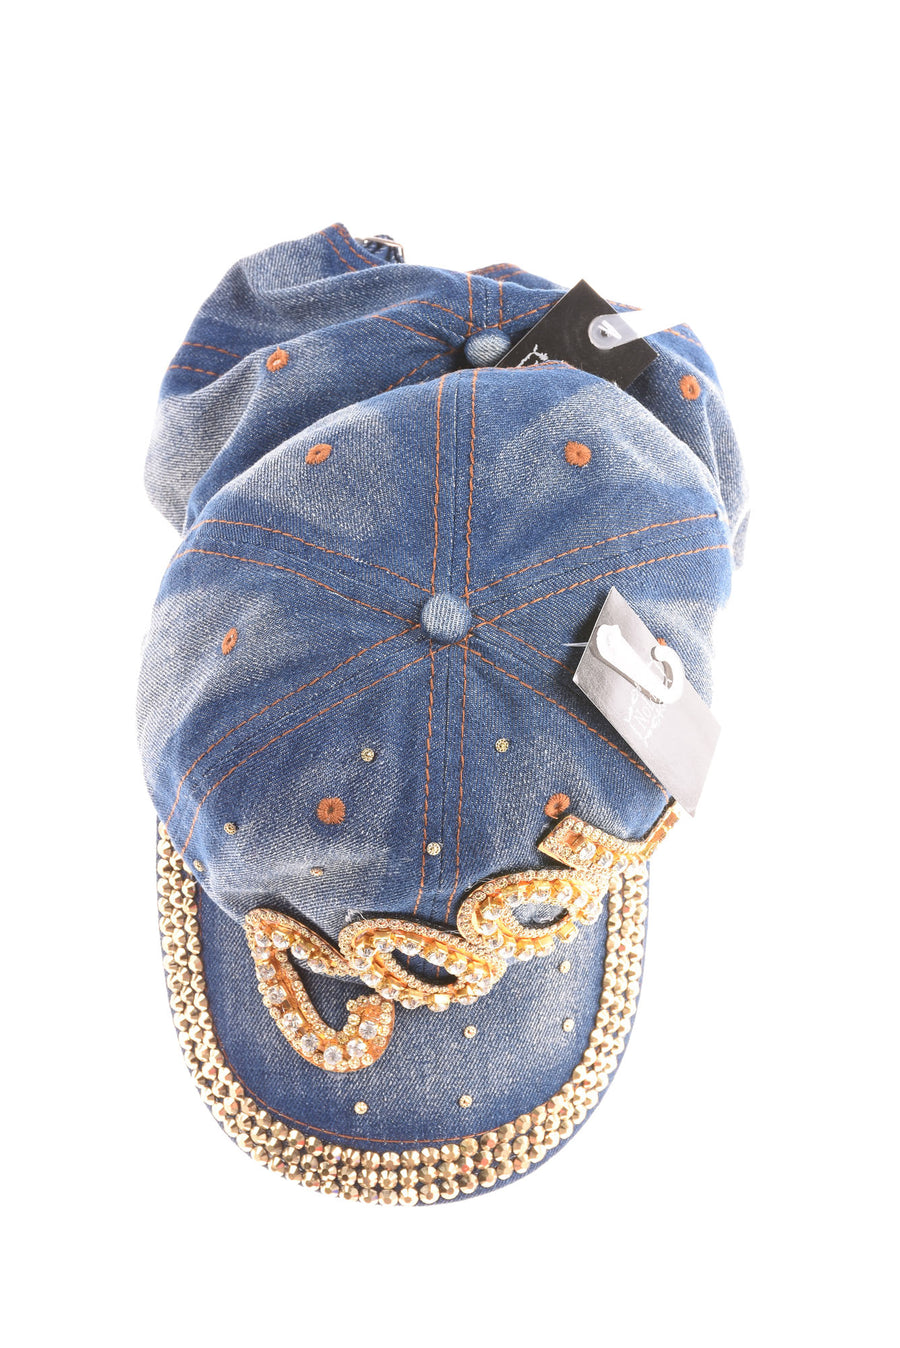 NEW Nollia Women's Hats One Size Blue & Gold Tone